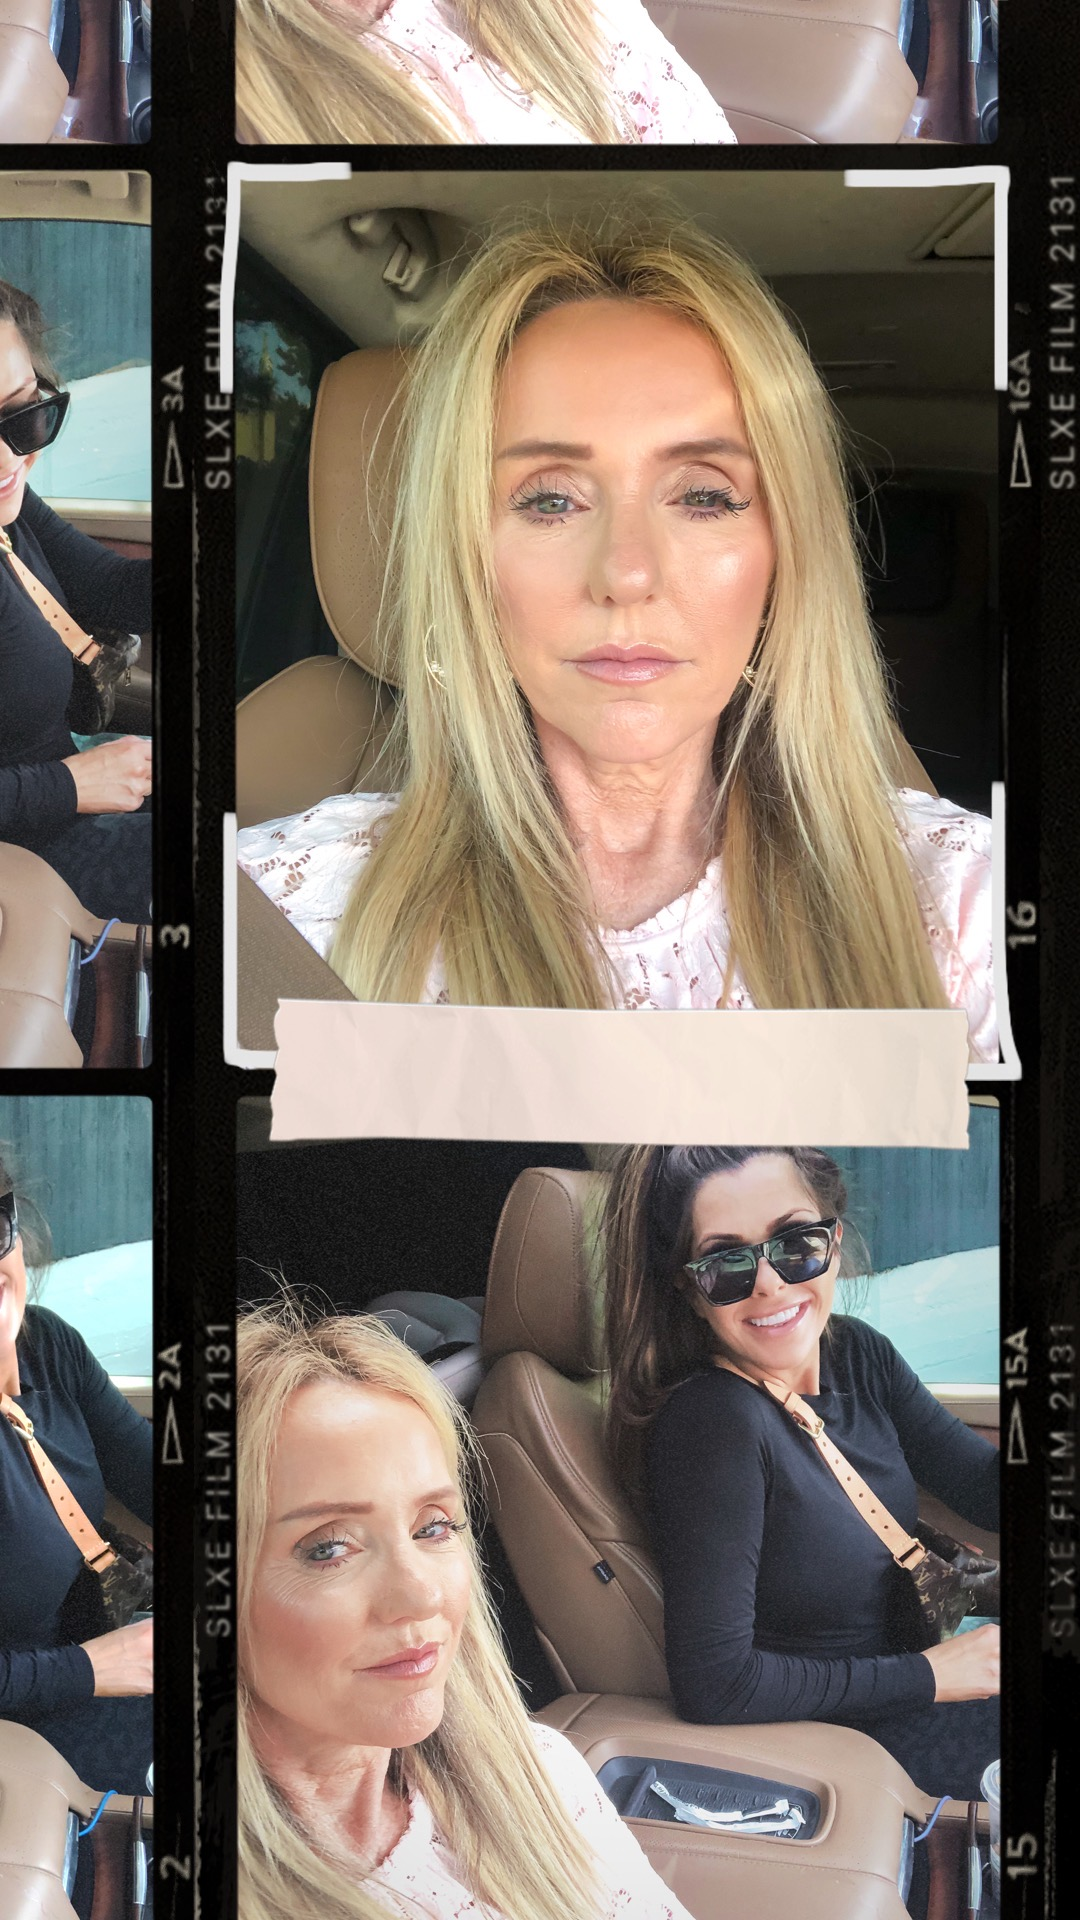 skincare review, makeup for over 50, bellafill before and after, | Makeup Routine by popular US beauty blog, The Sweetest Thing: collage image of Emily Gemma and her mom Coco riding in a car.